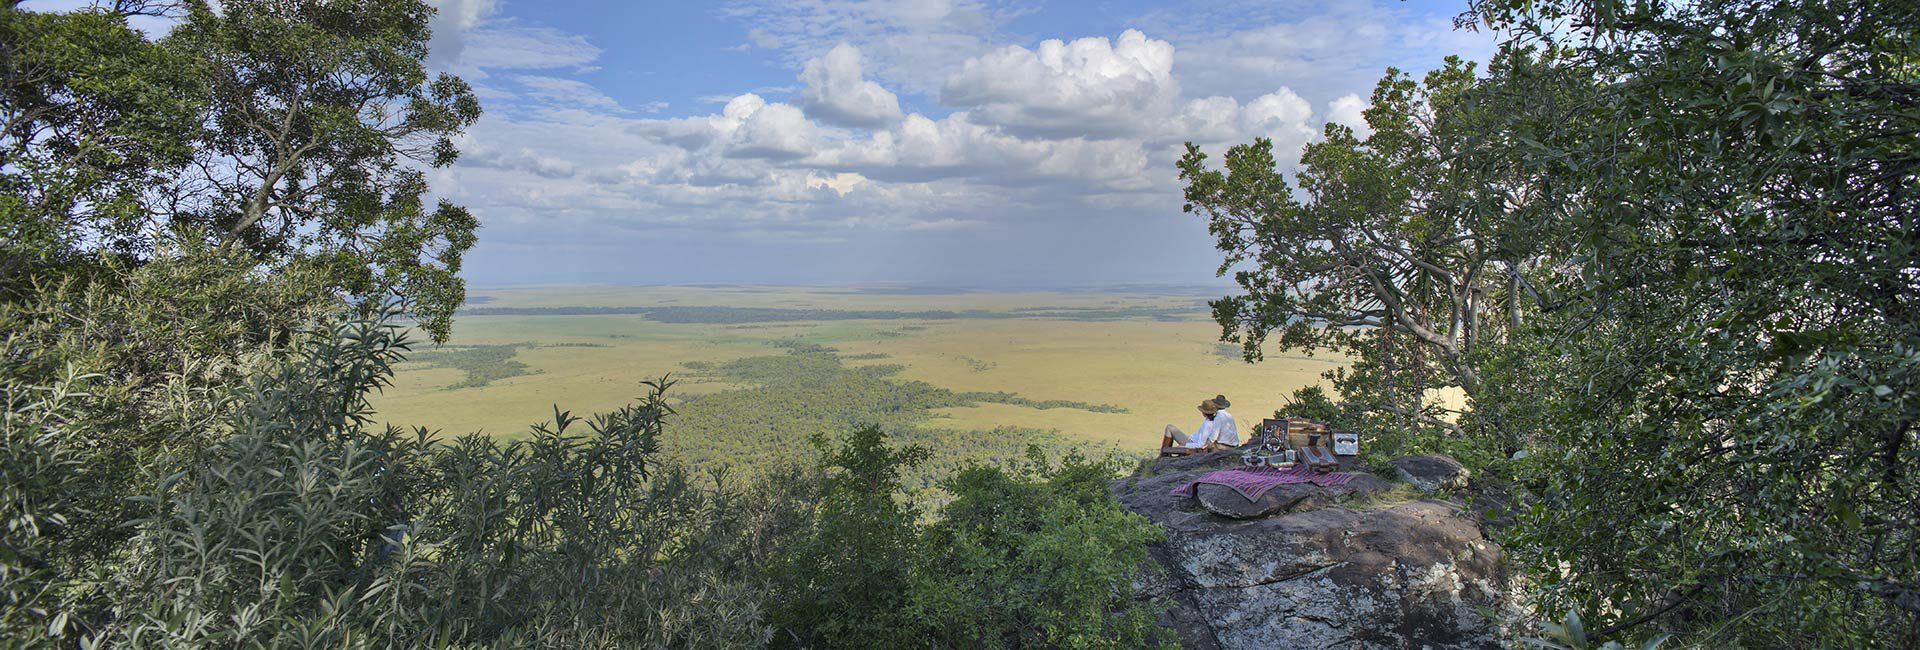 The ultimate 'Out of Africa' experience